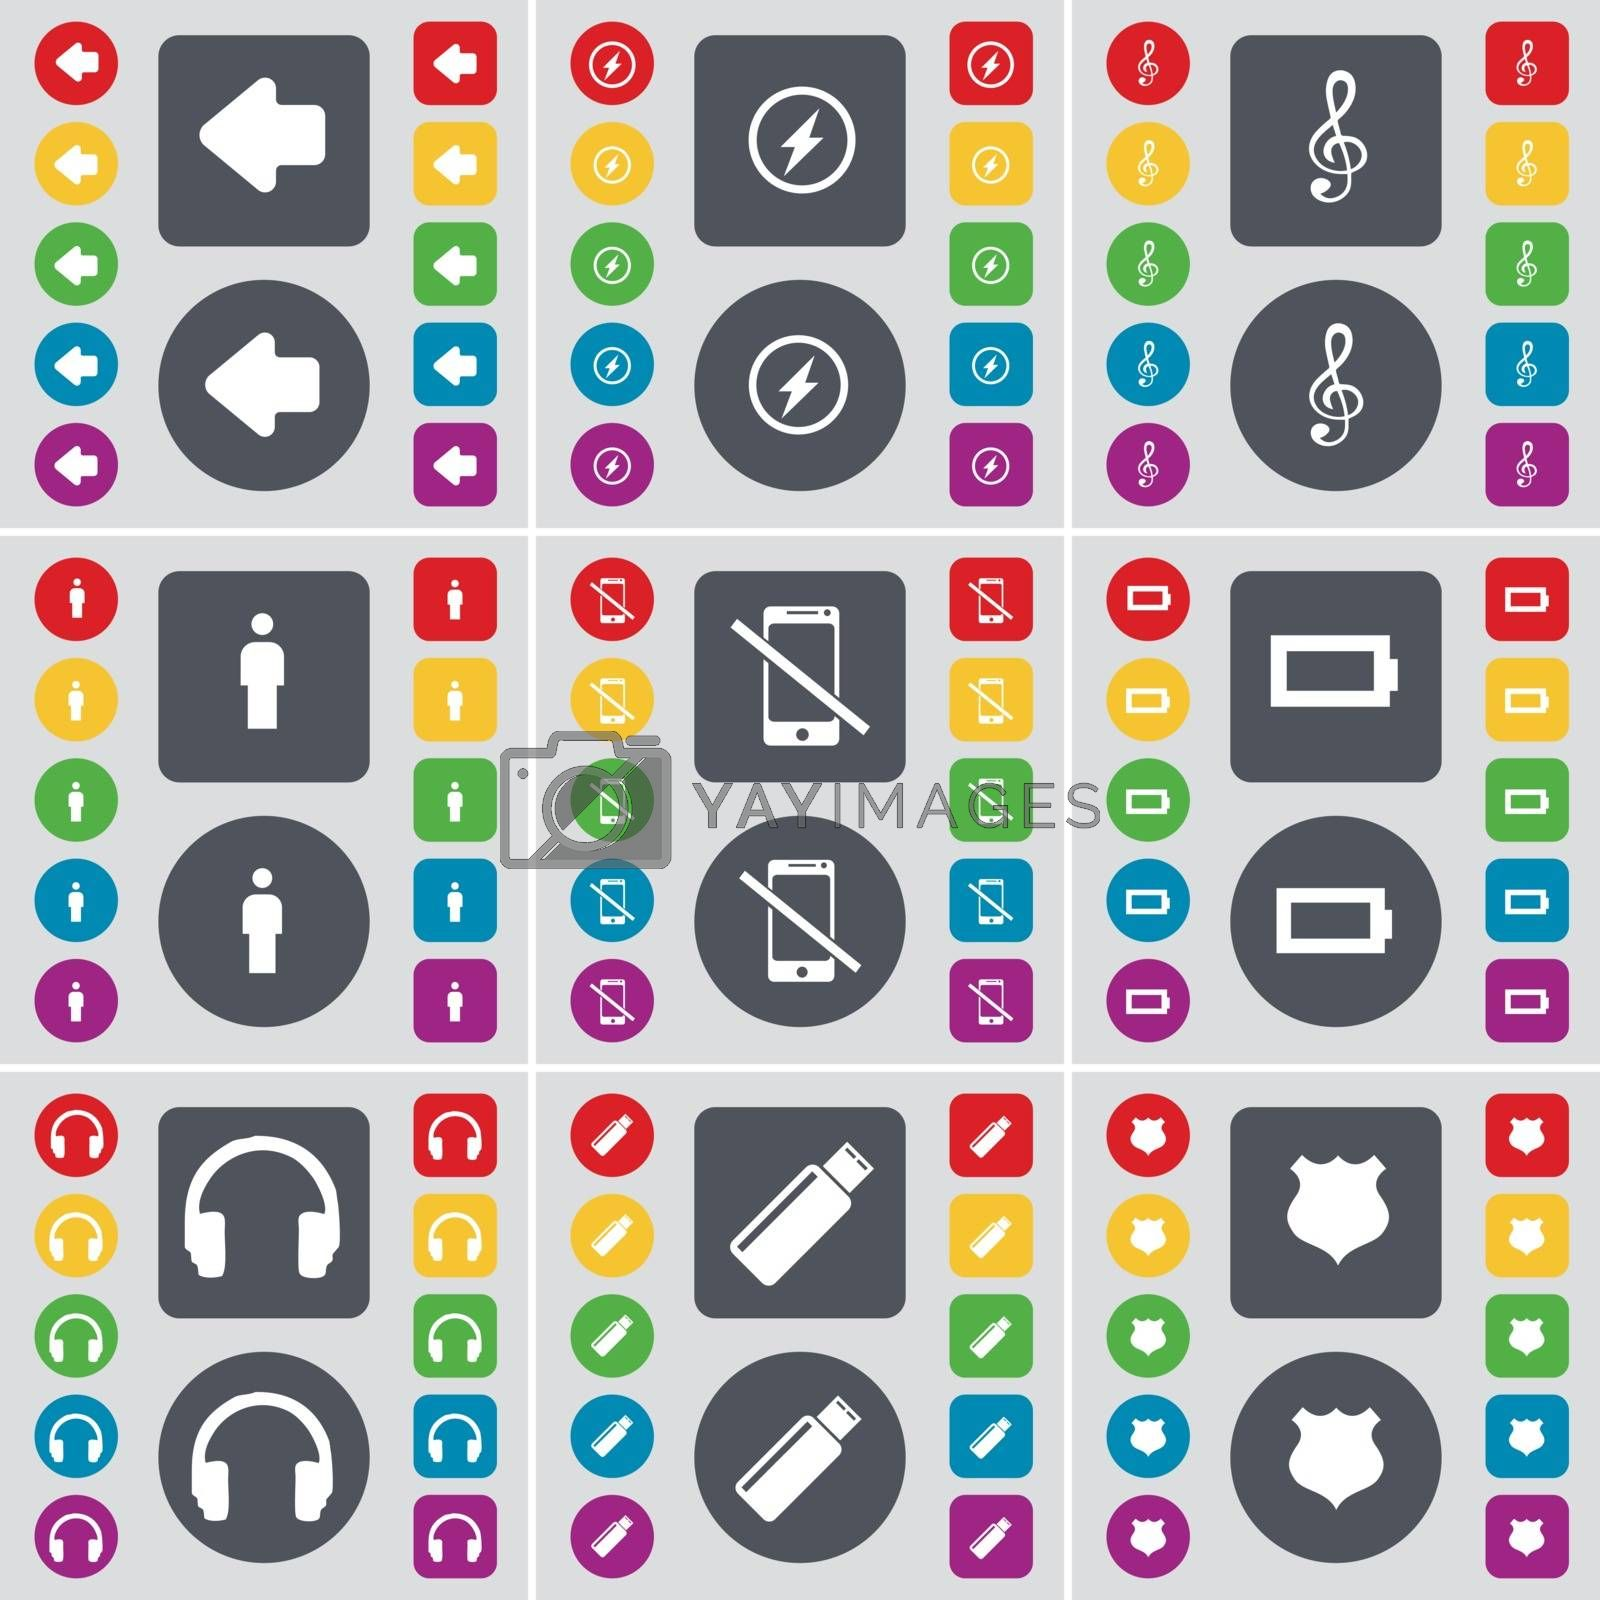 Royalty free image of Arrow left, Flash, Clef, Silhouette, Smartphone, Battery, Headphones, USB, Police badge icon symbol. A large set of flat, colored buttons for your design. Vector by serhii_lohvyniuk